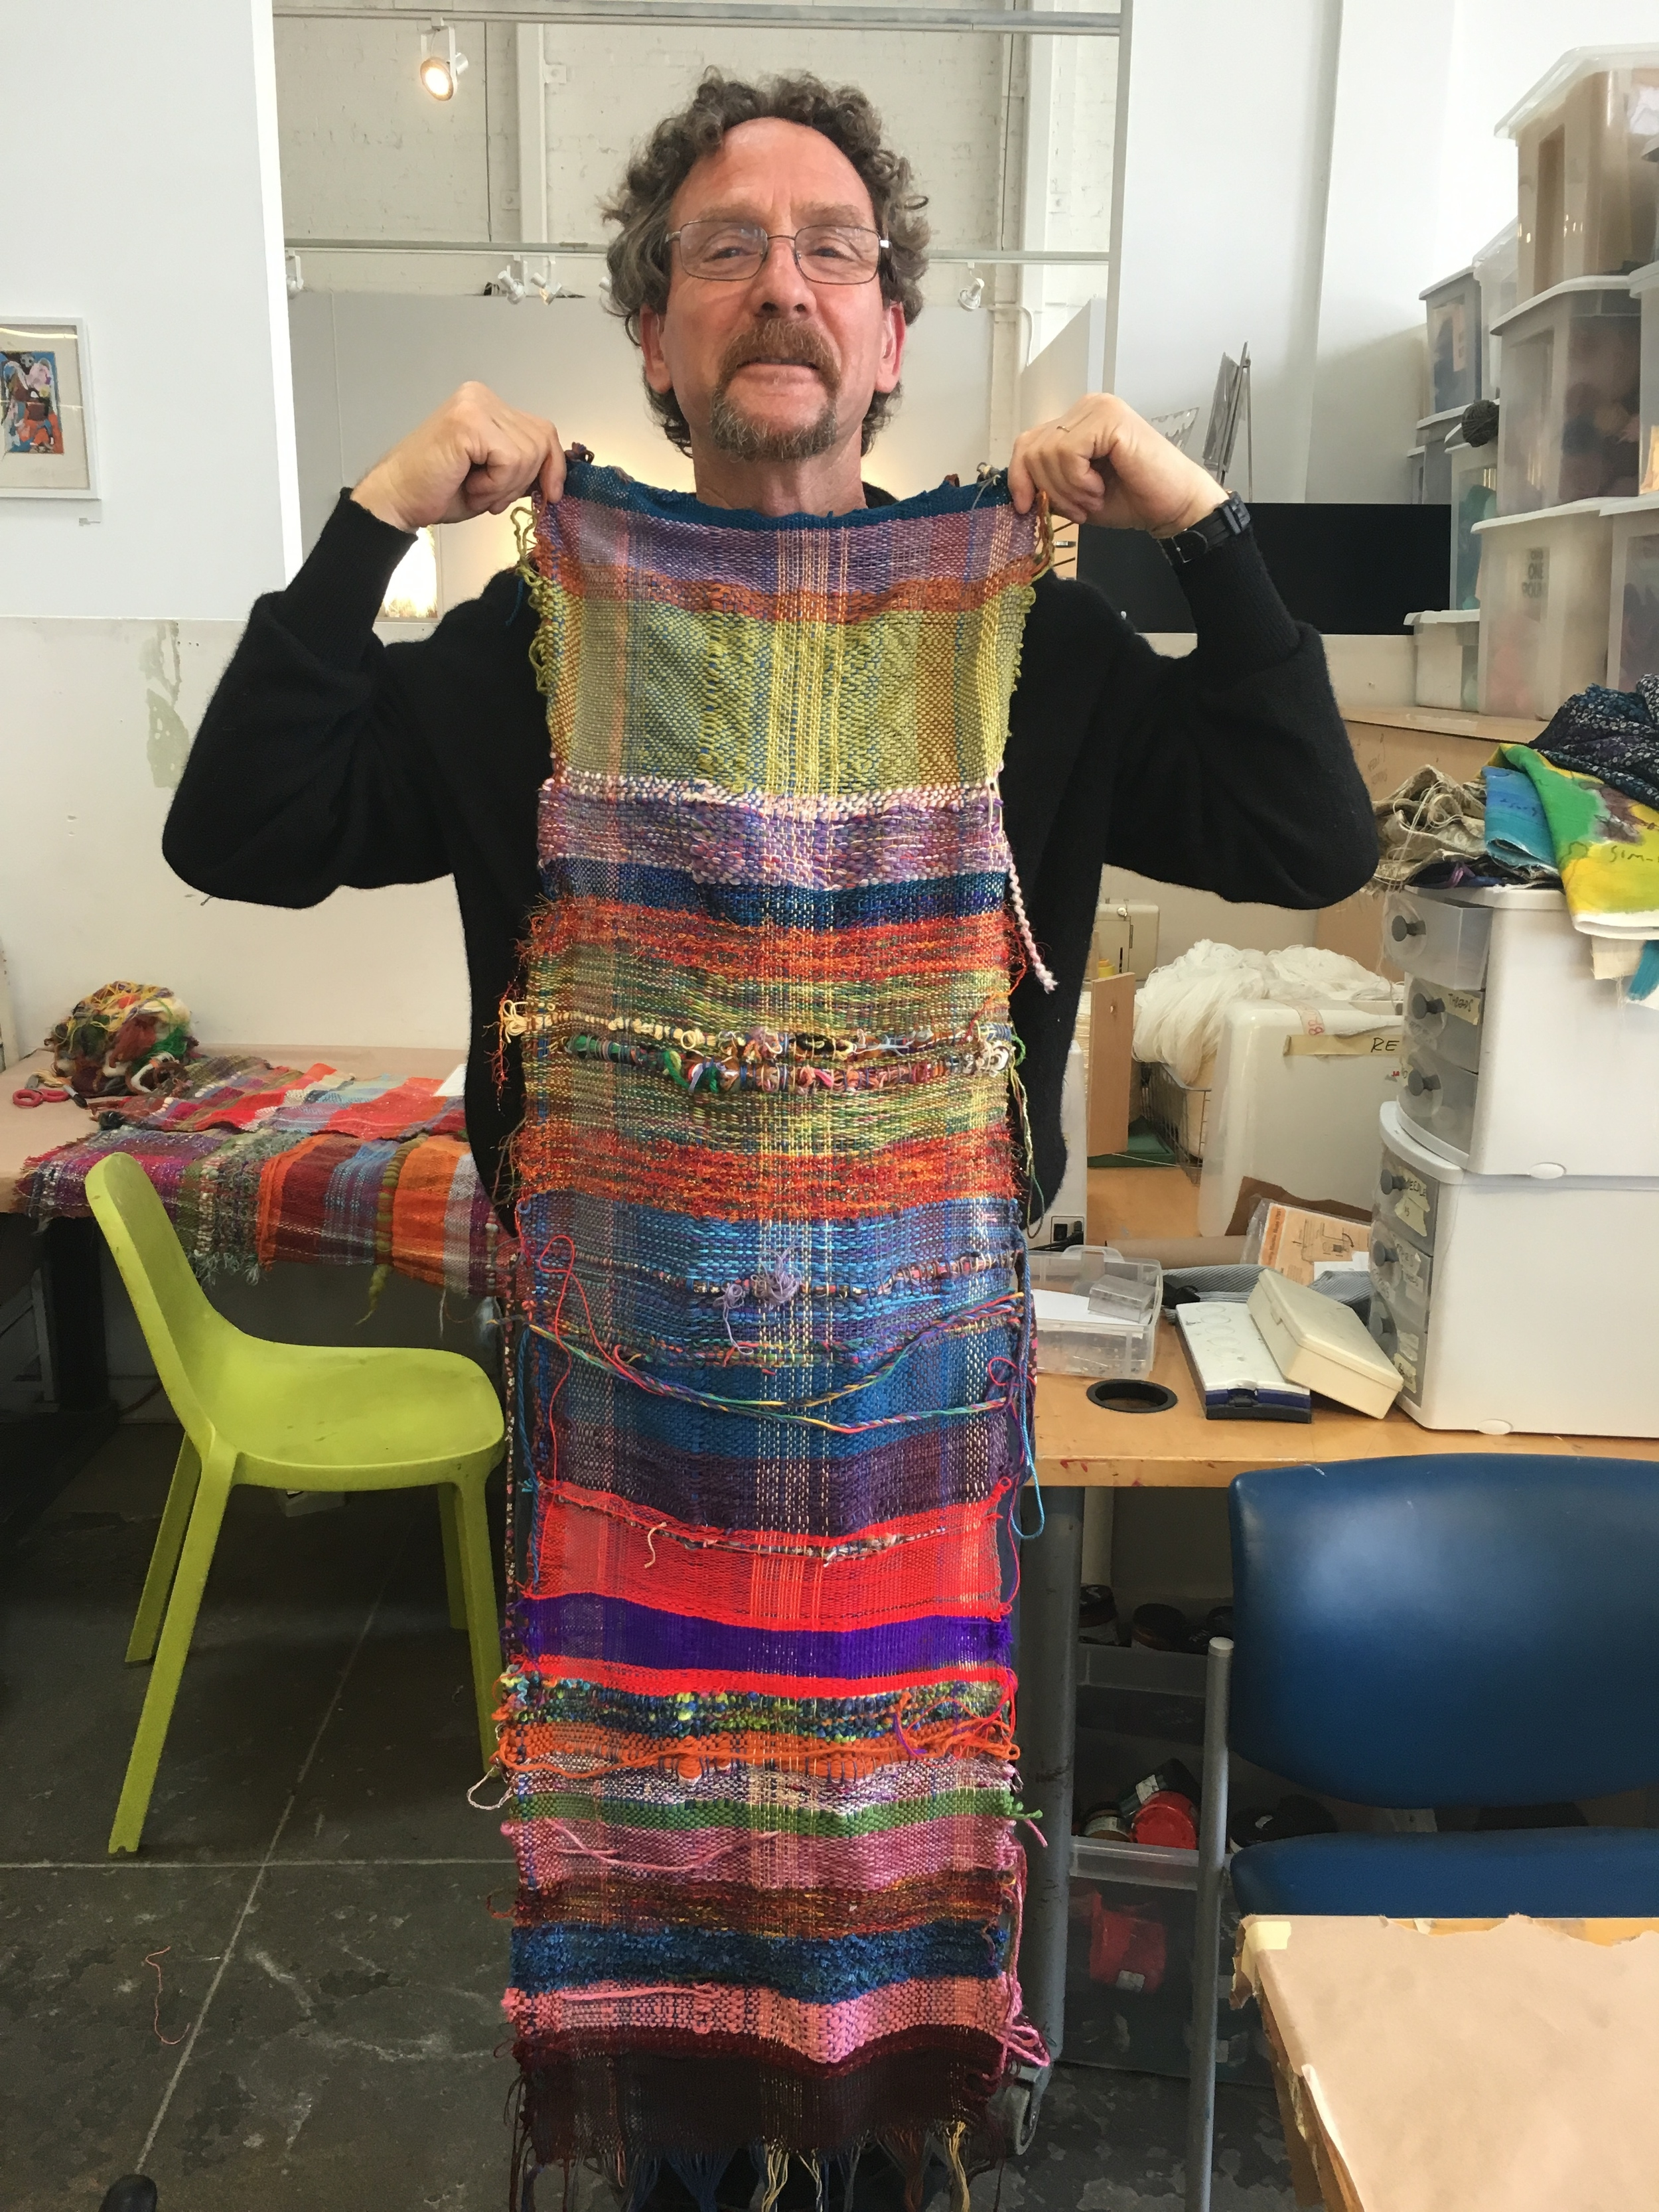 Artist Pete Salsman holding up the part of the communally woven piece pre garment making.